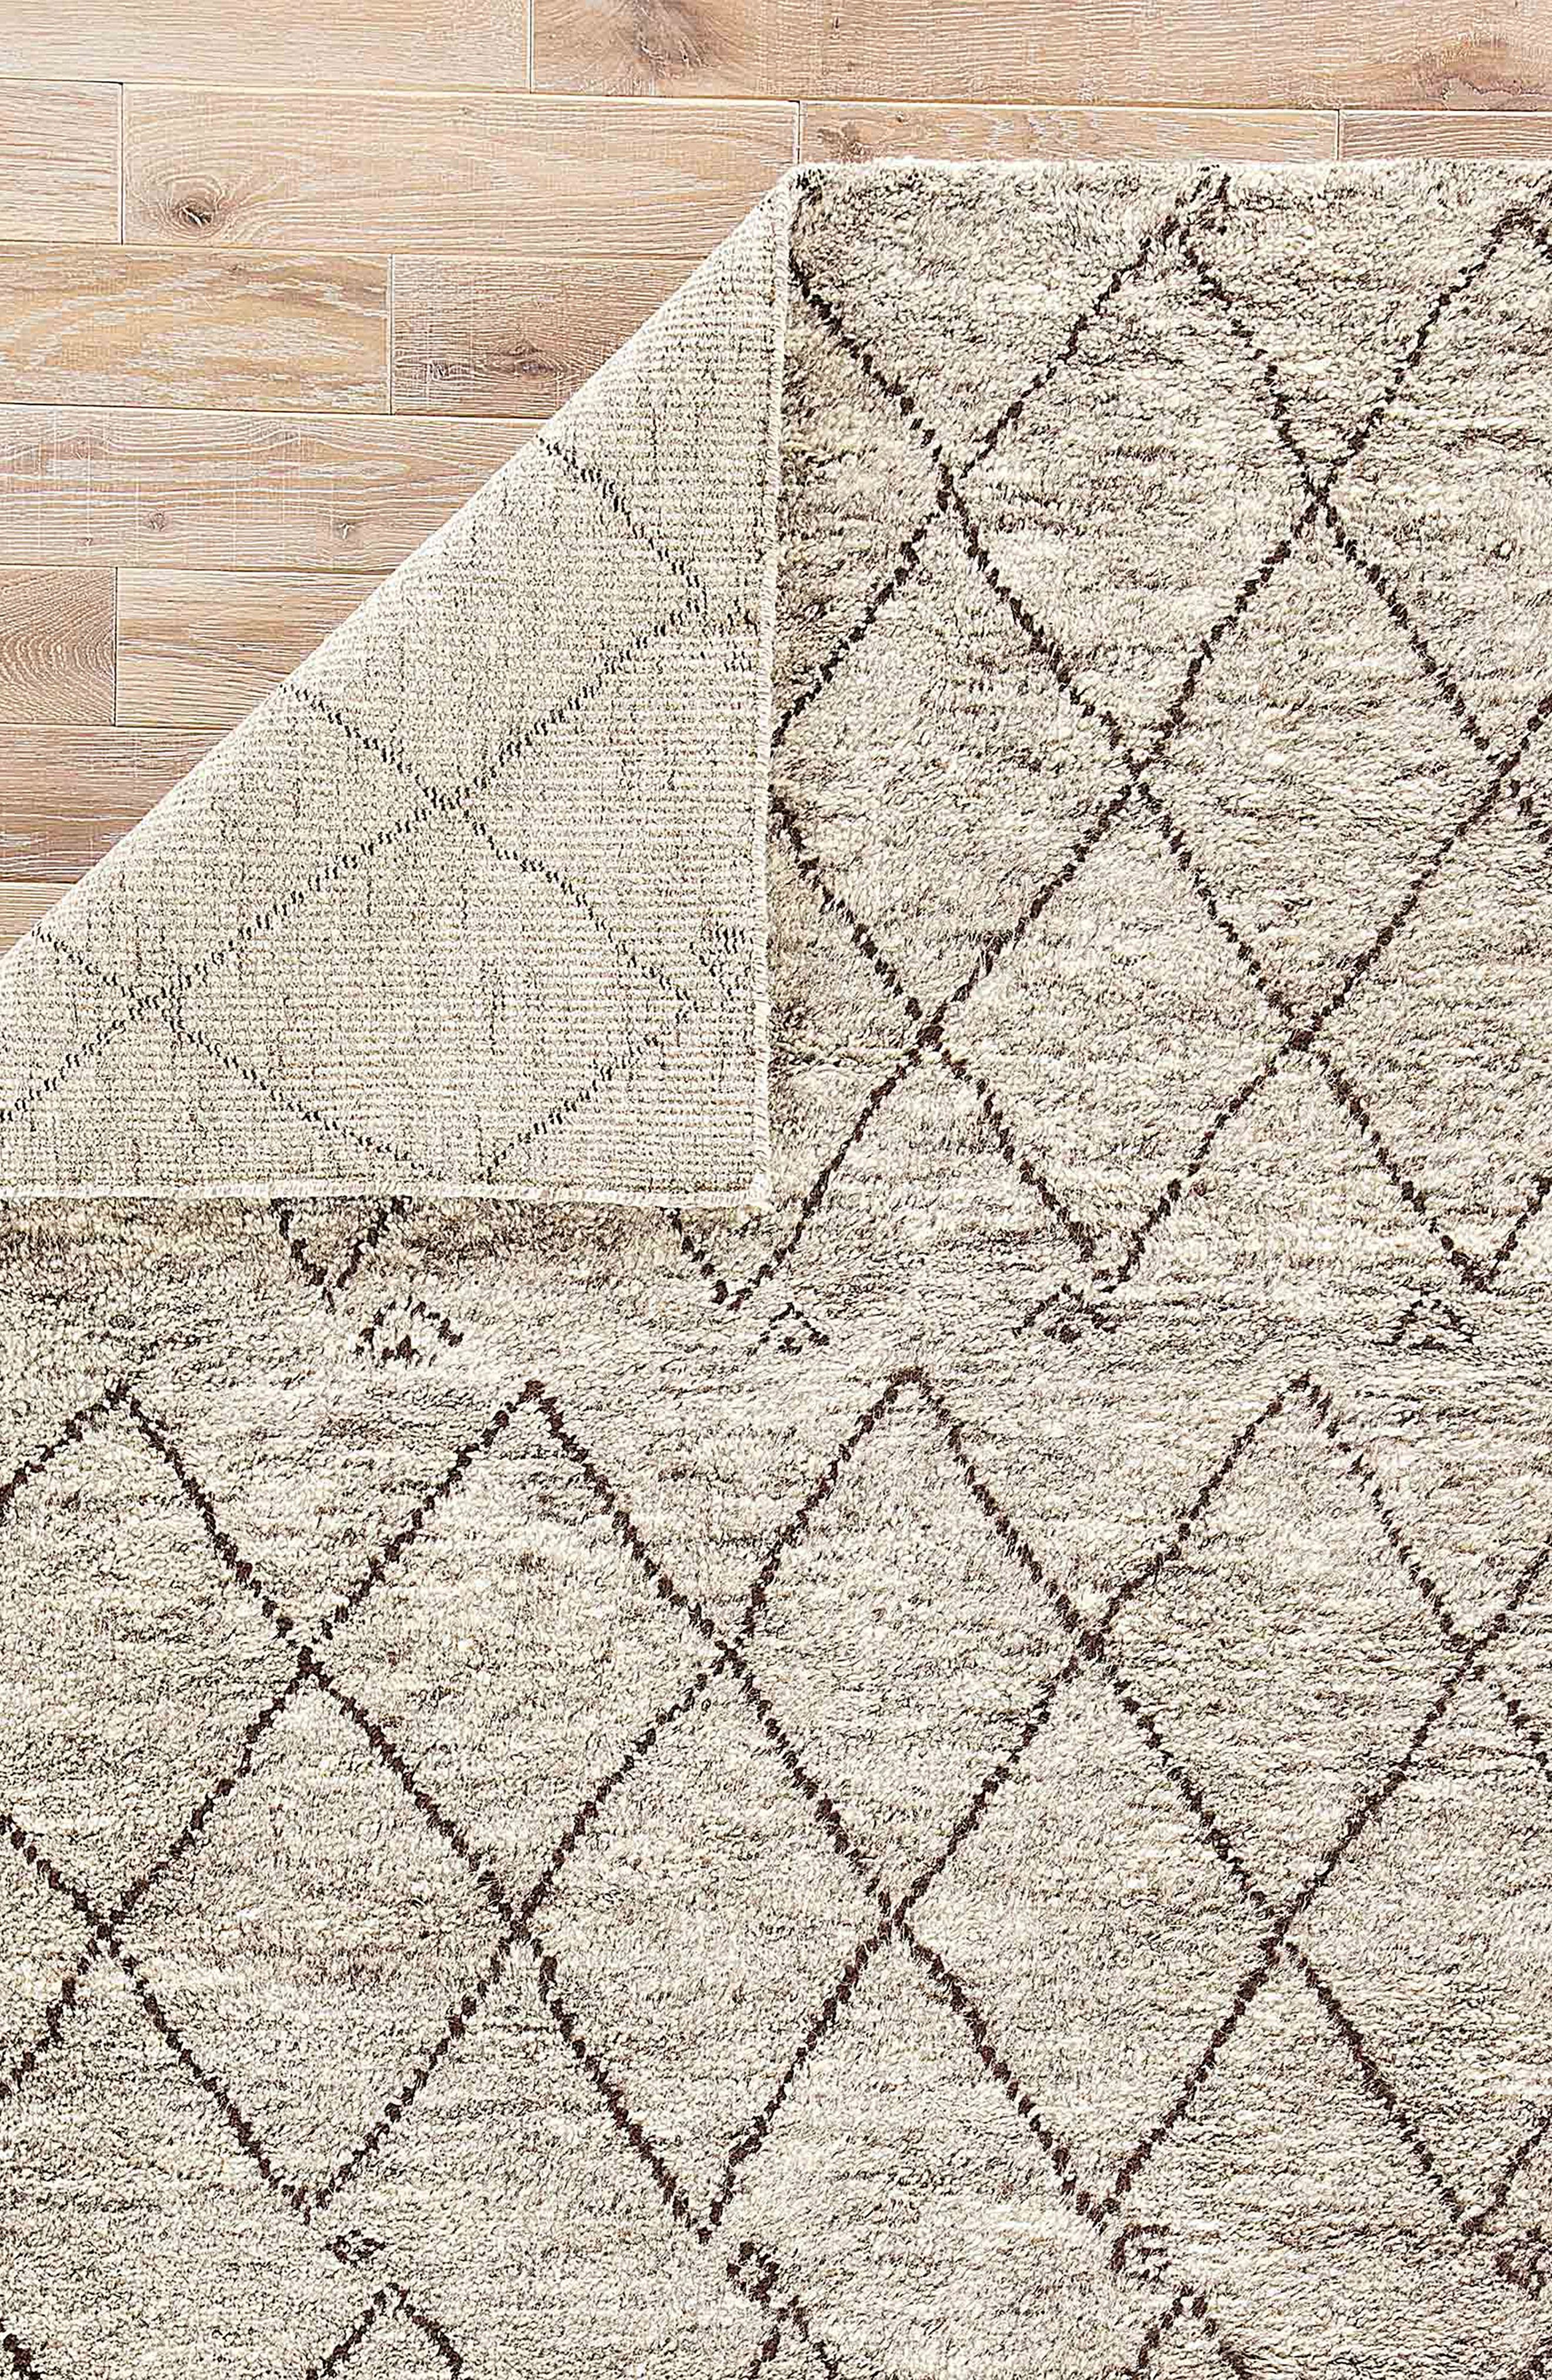 'Zola' Hand Knotted Wool Rug,                             Alternate thumbnail 2, color,                             NATURAL/ BROWN